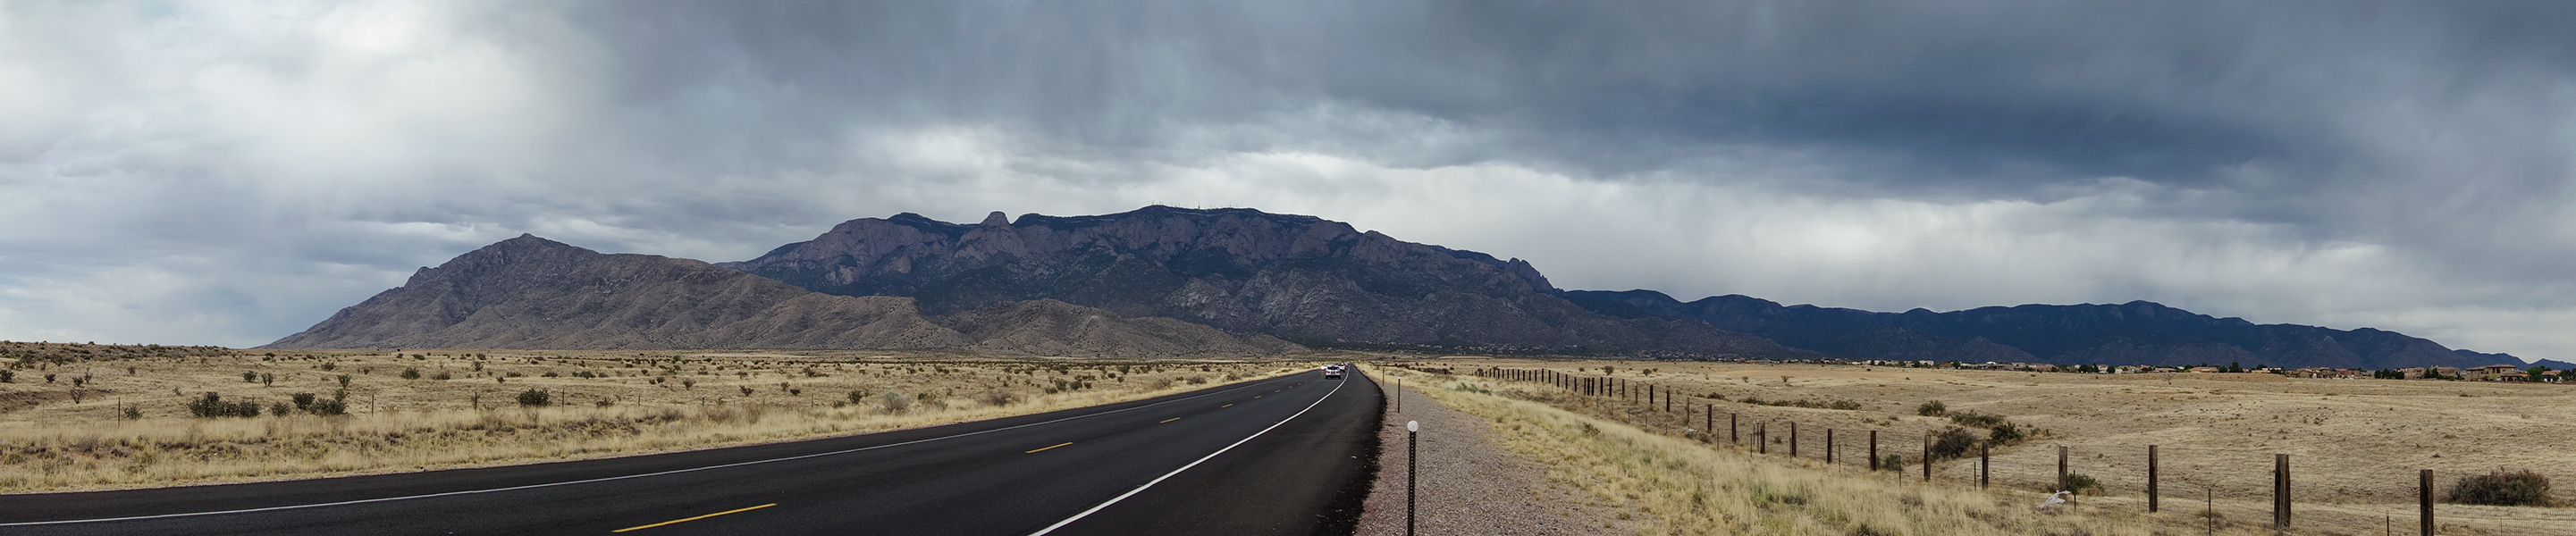 Approaching the Sandia Mountains, Albuquerque